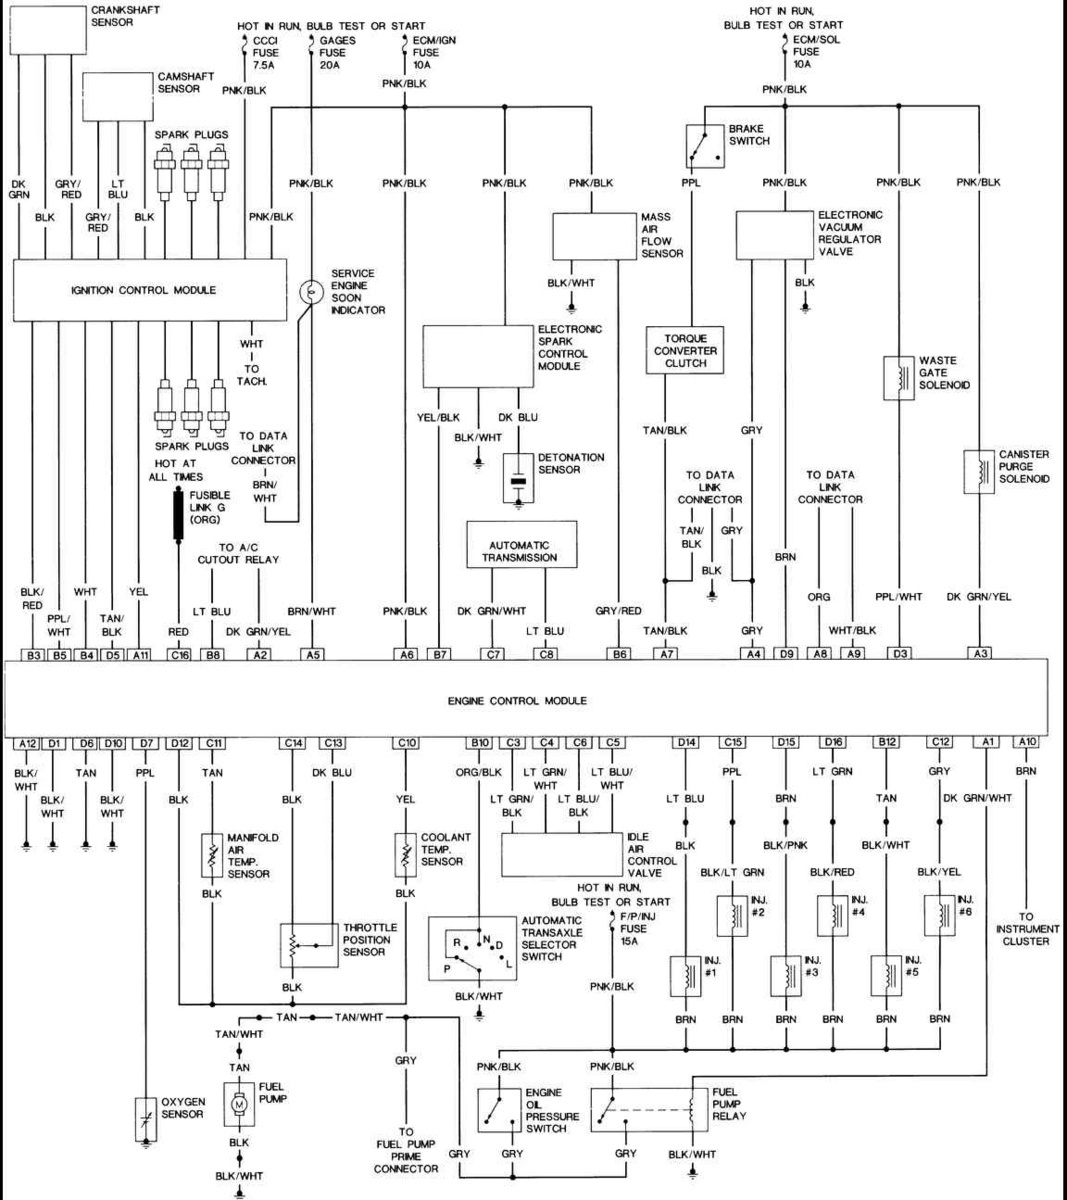 hight resolution of wiring diagram buick grand national wiring diagram query 1987 buick grand national ecm wiring diagram wiring diagram 1987 buick grand national